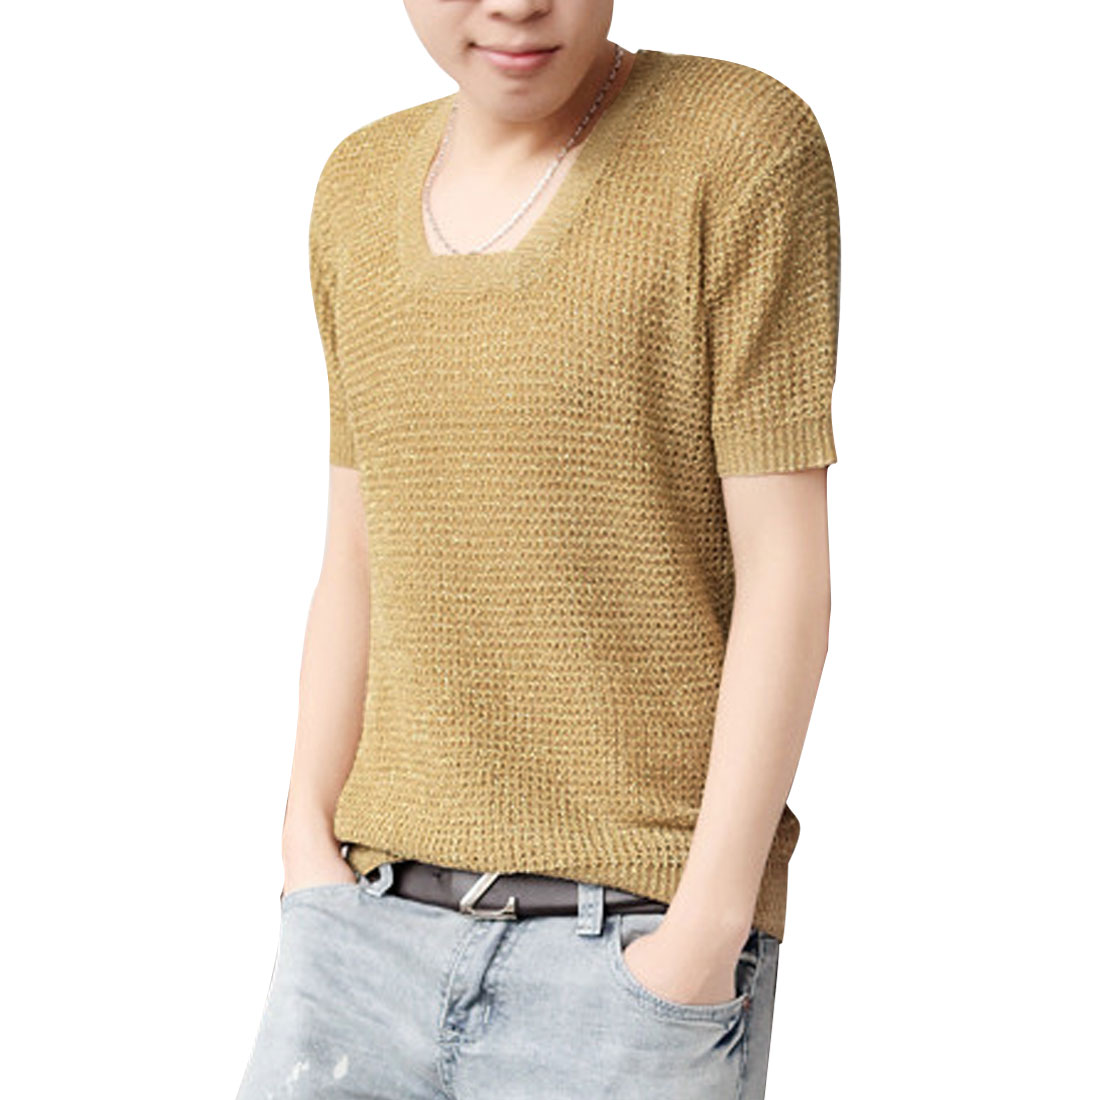 Stylish Khaki Color Square Neck Short Sleeve Summer Knitted Top for Man M